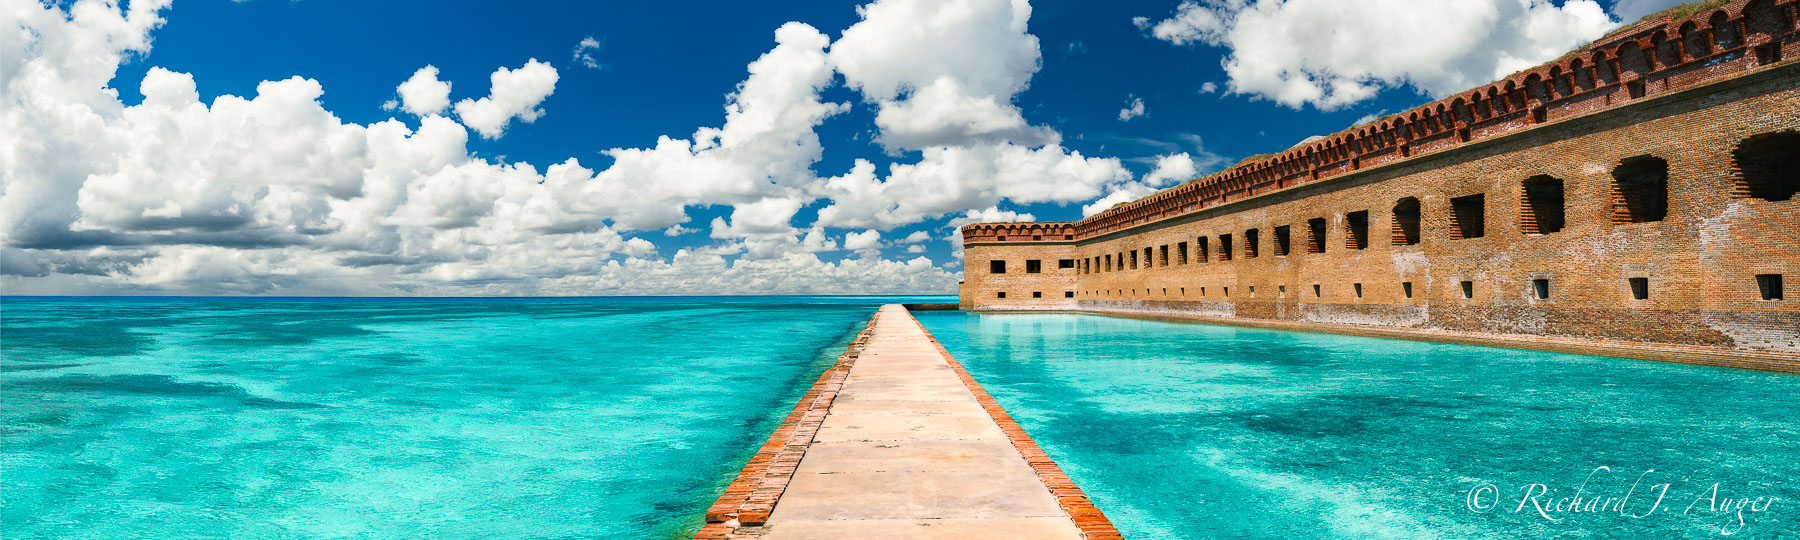 Dry Tortugas National Park, Fort Jefferson, Florida, Panorama, Fort, Ocean, Walkway, Moat, Photograph, Landscape, Photo, Photographer